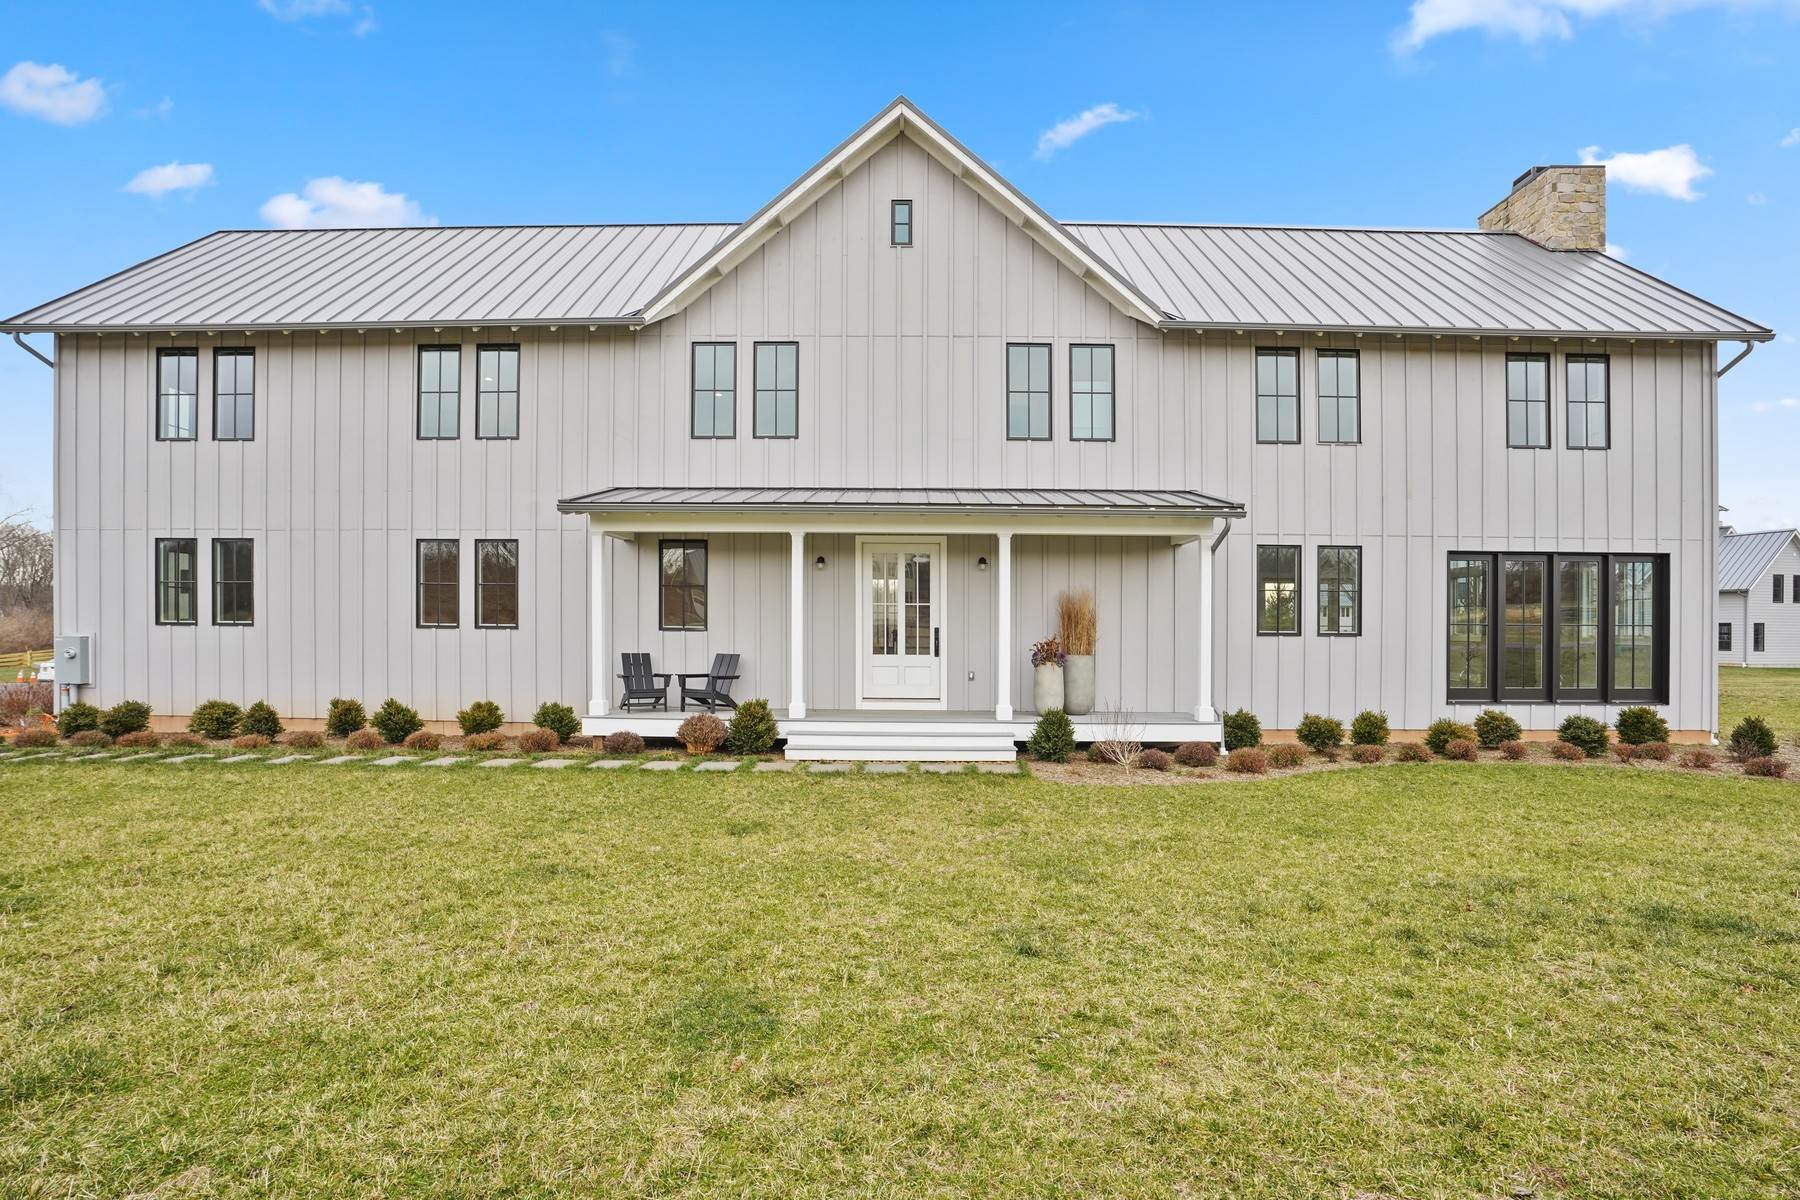 Single Family Homes for Sale at Modern Farmhouse with Open Concept Indoor Outdoor Living 23 River Farm Lane Basking Ridge, New Jersey 07920 United States